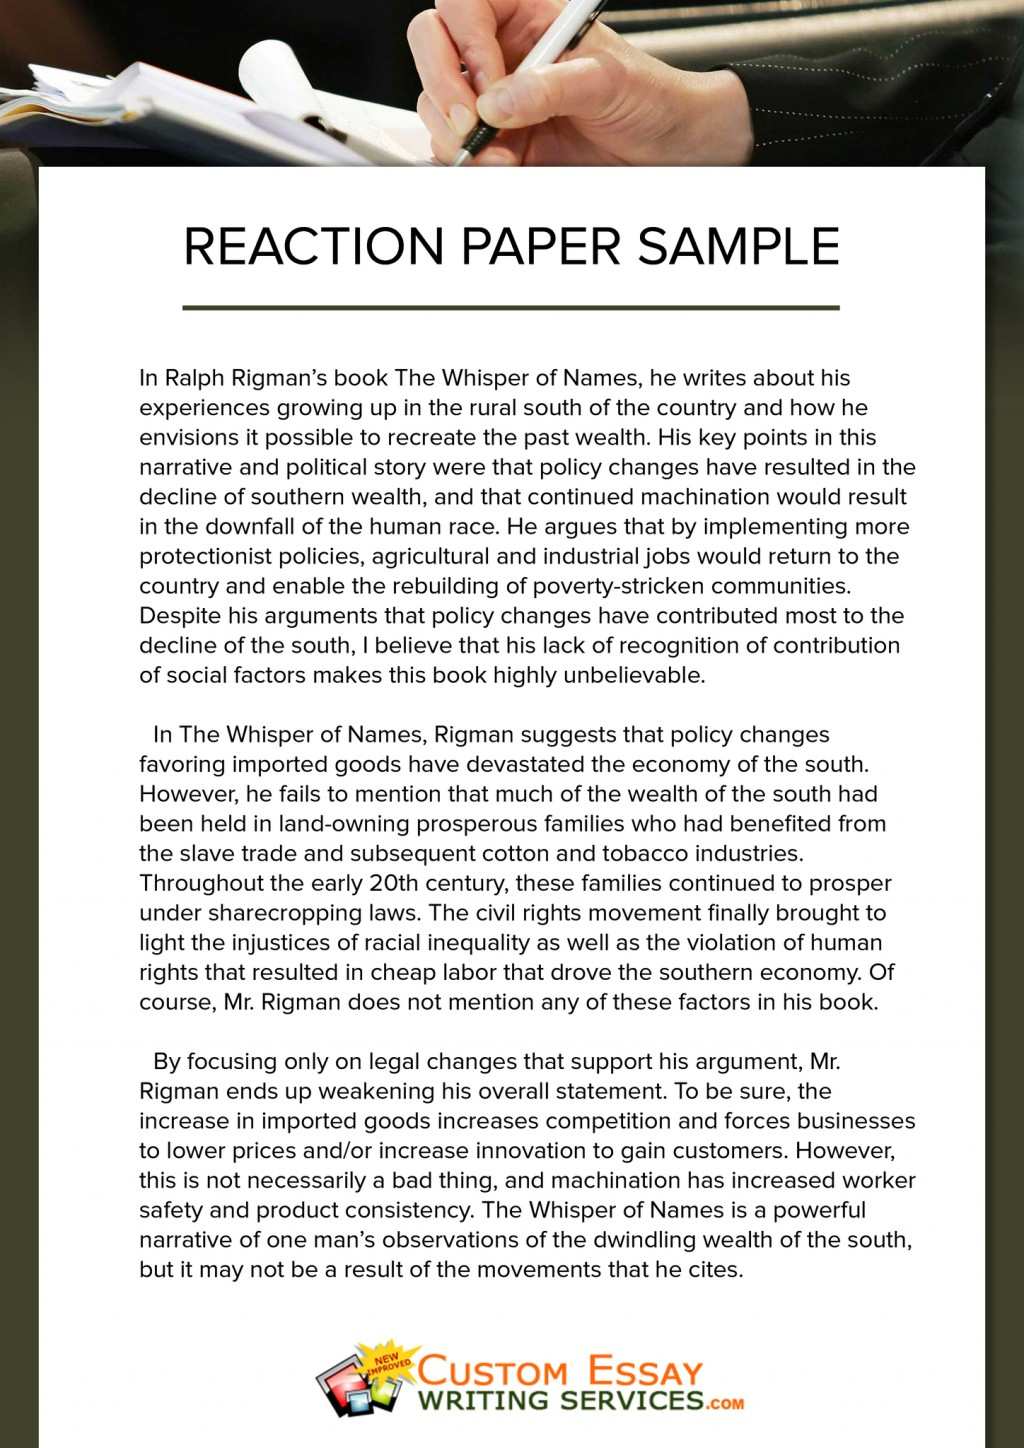 003 Writing Reaction Paper Sample Essay Top Example Large